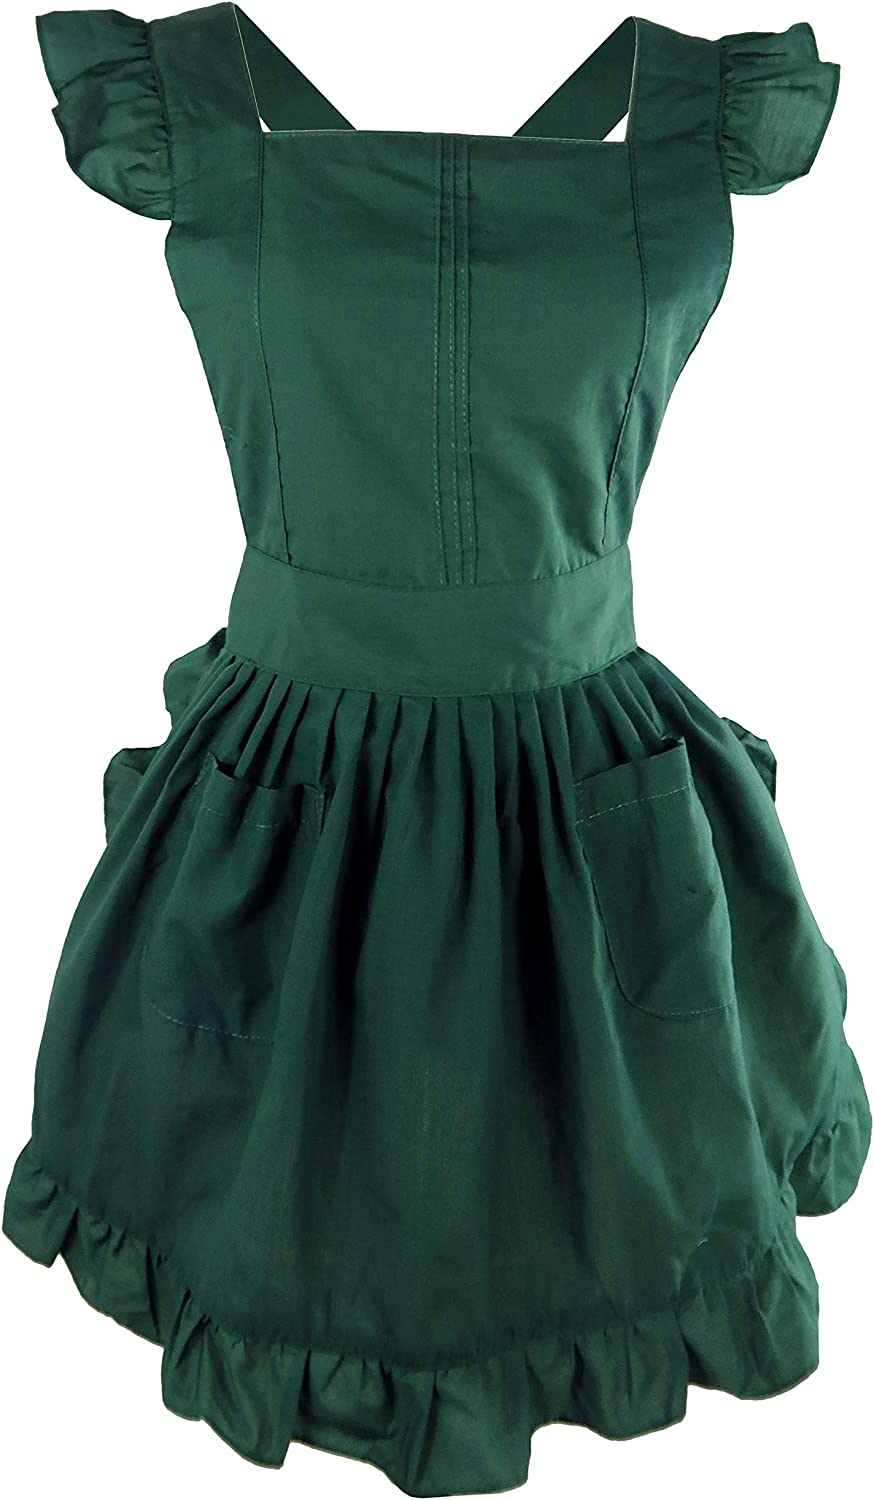 LilMents Petite Maid Ruffle Retro Apron Kitchen Cooking Cleaning Fancy Dress Cosplay Costume (Green)